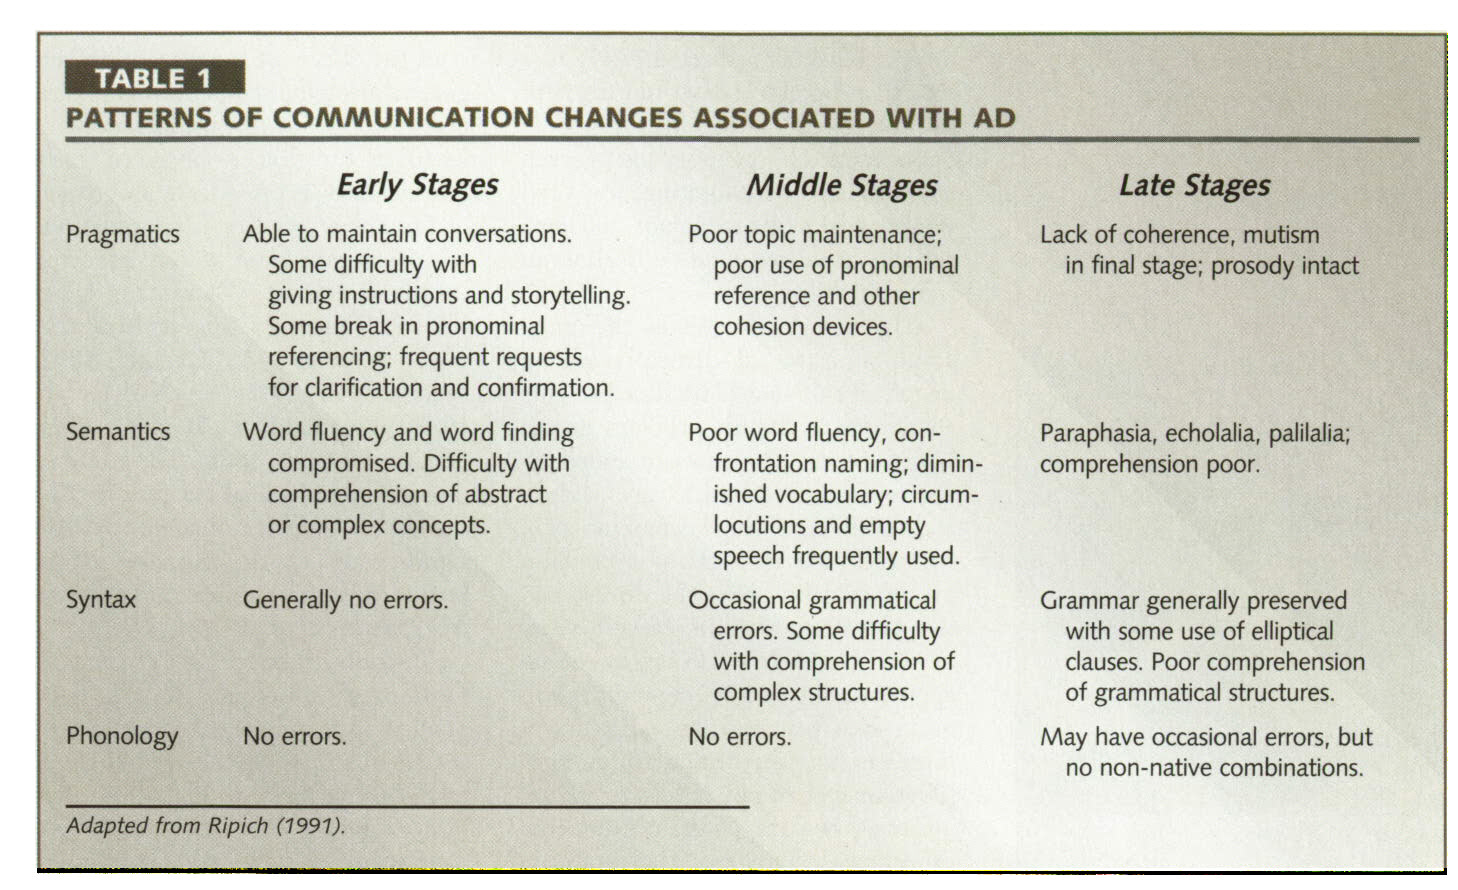 TABLE 1PATTERNS OF COMMUNICATION CHANCES ASSOCIATED WITH AD